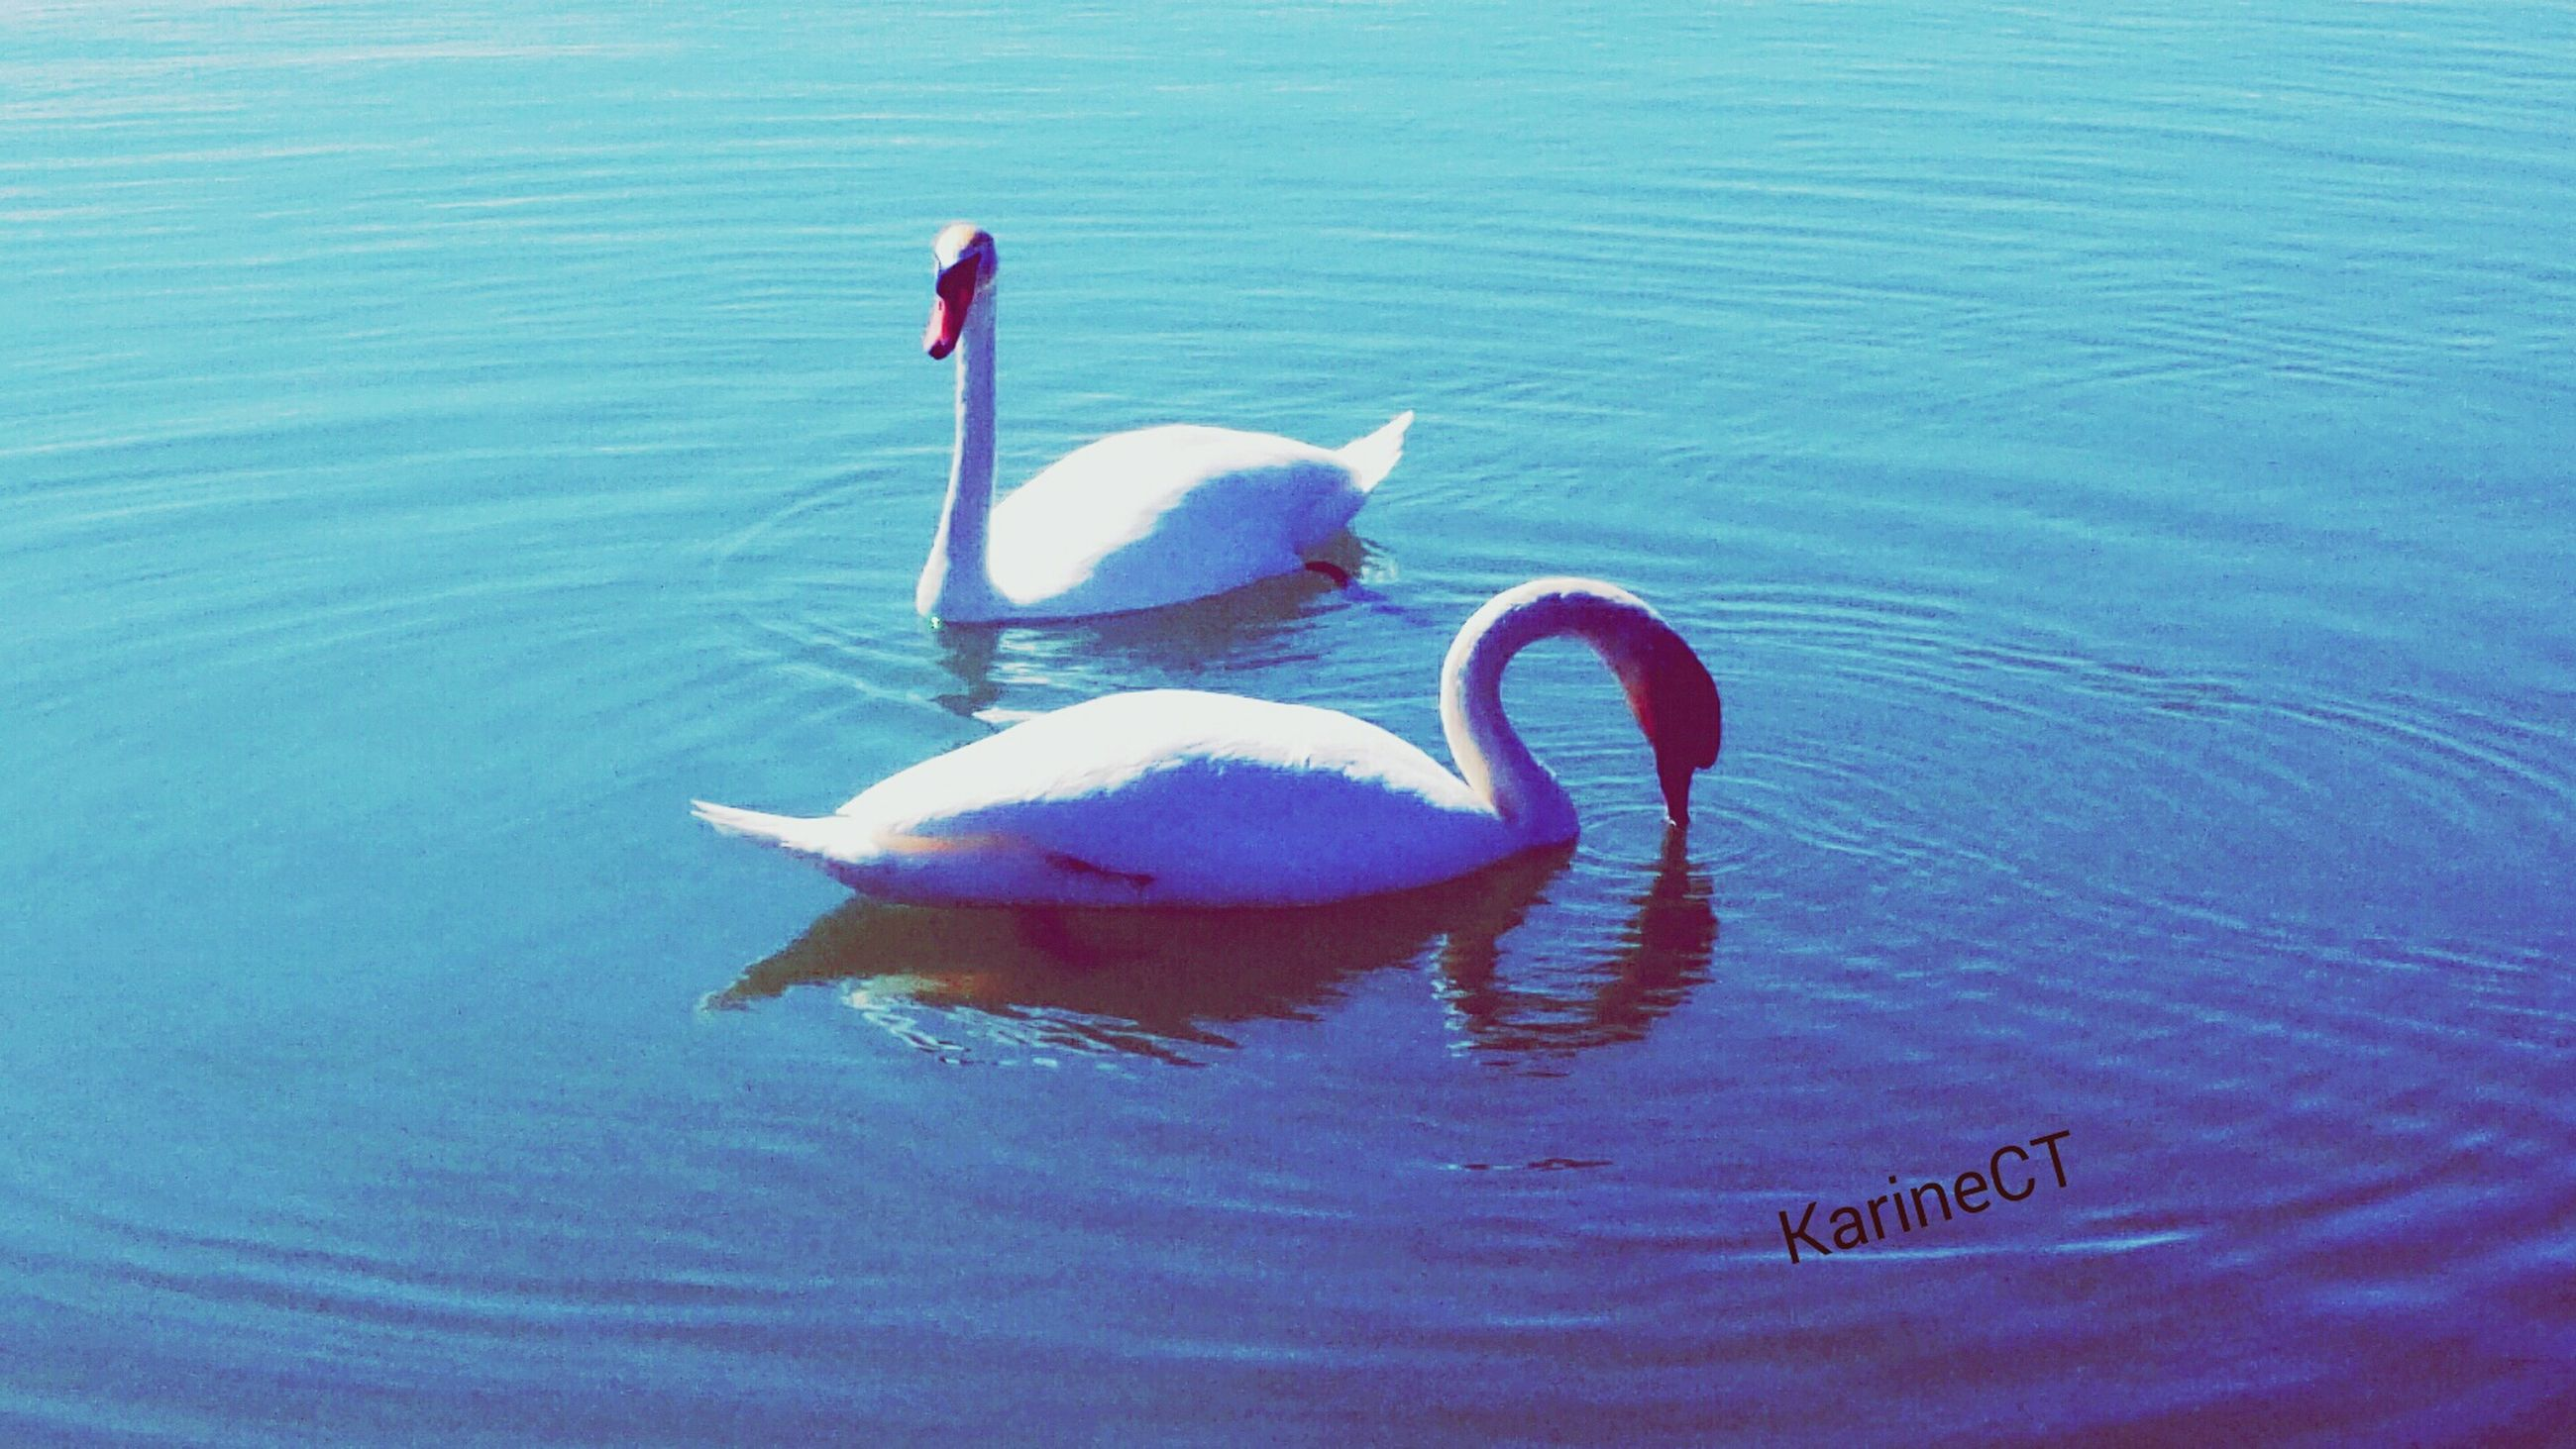 water, bird, swan, animal themes, lake, animals in the wild, swimming, wildlife, waterfront, rippled, reflection, nature, floating on water, water bird, one animal, beauty in nature, beak, flamingo, outdoors, day